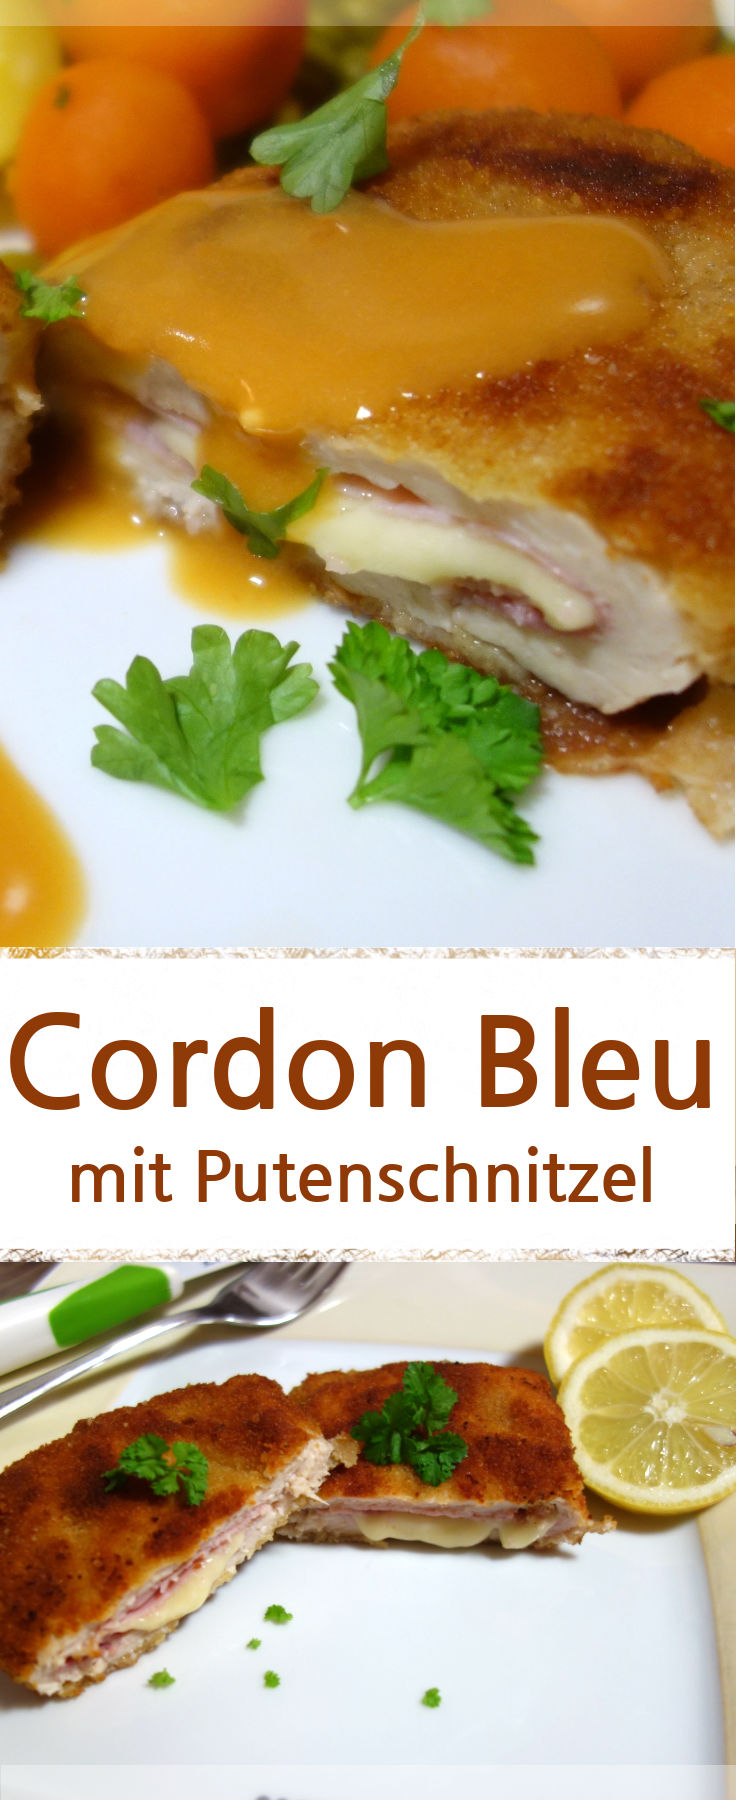 cordon bleu aus putenschnitzel gef llt mit emmentaler k se und gekochtem schinken und paniert. Black Bedroom Furniture Sets. Home Design Ideas